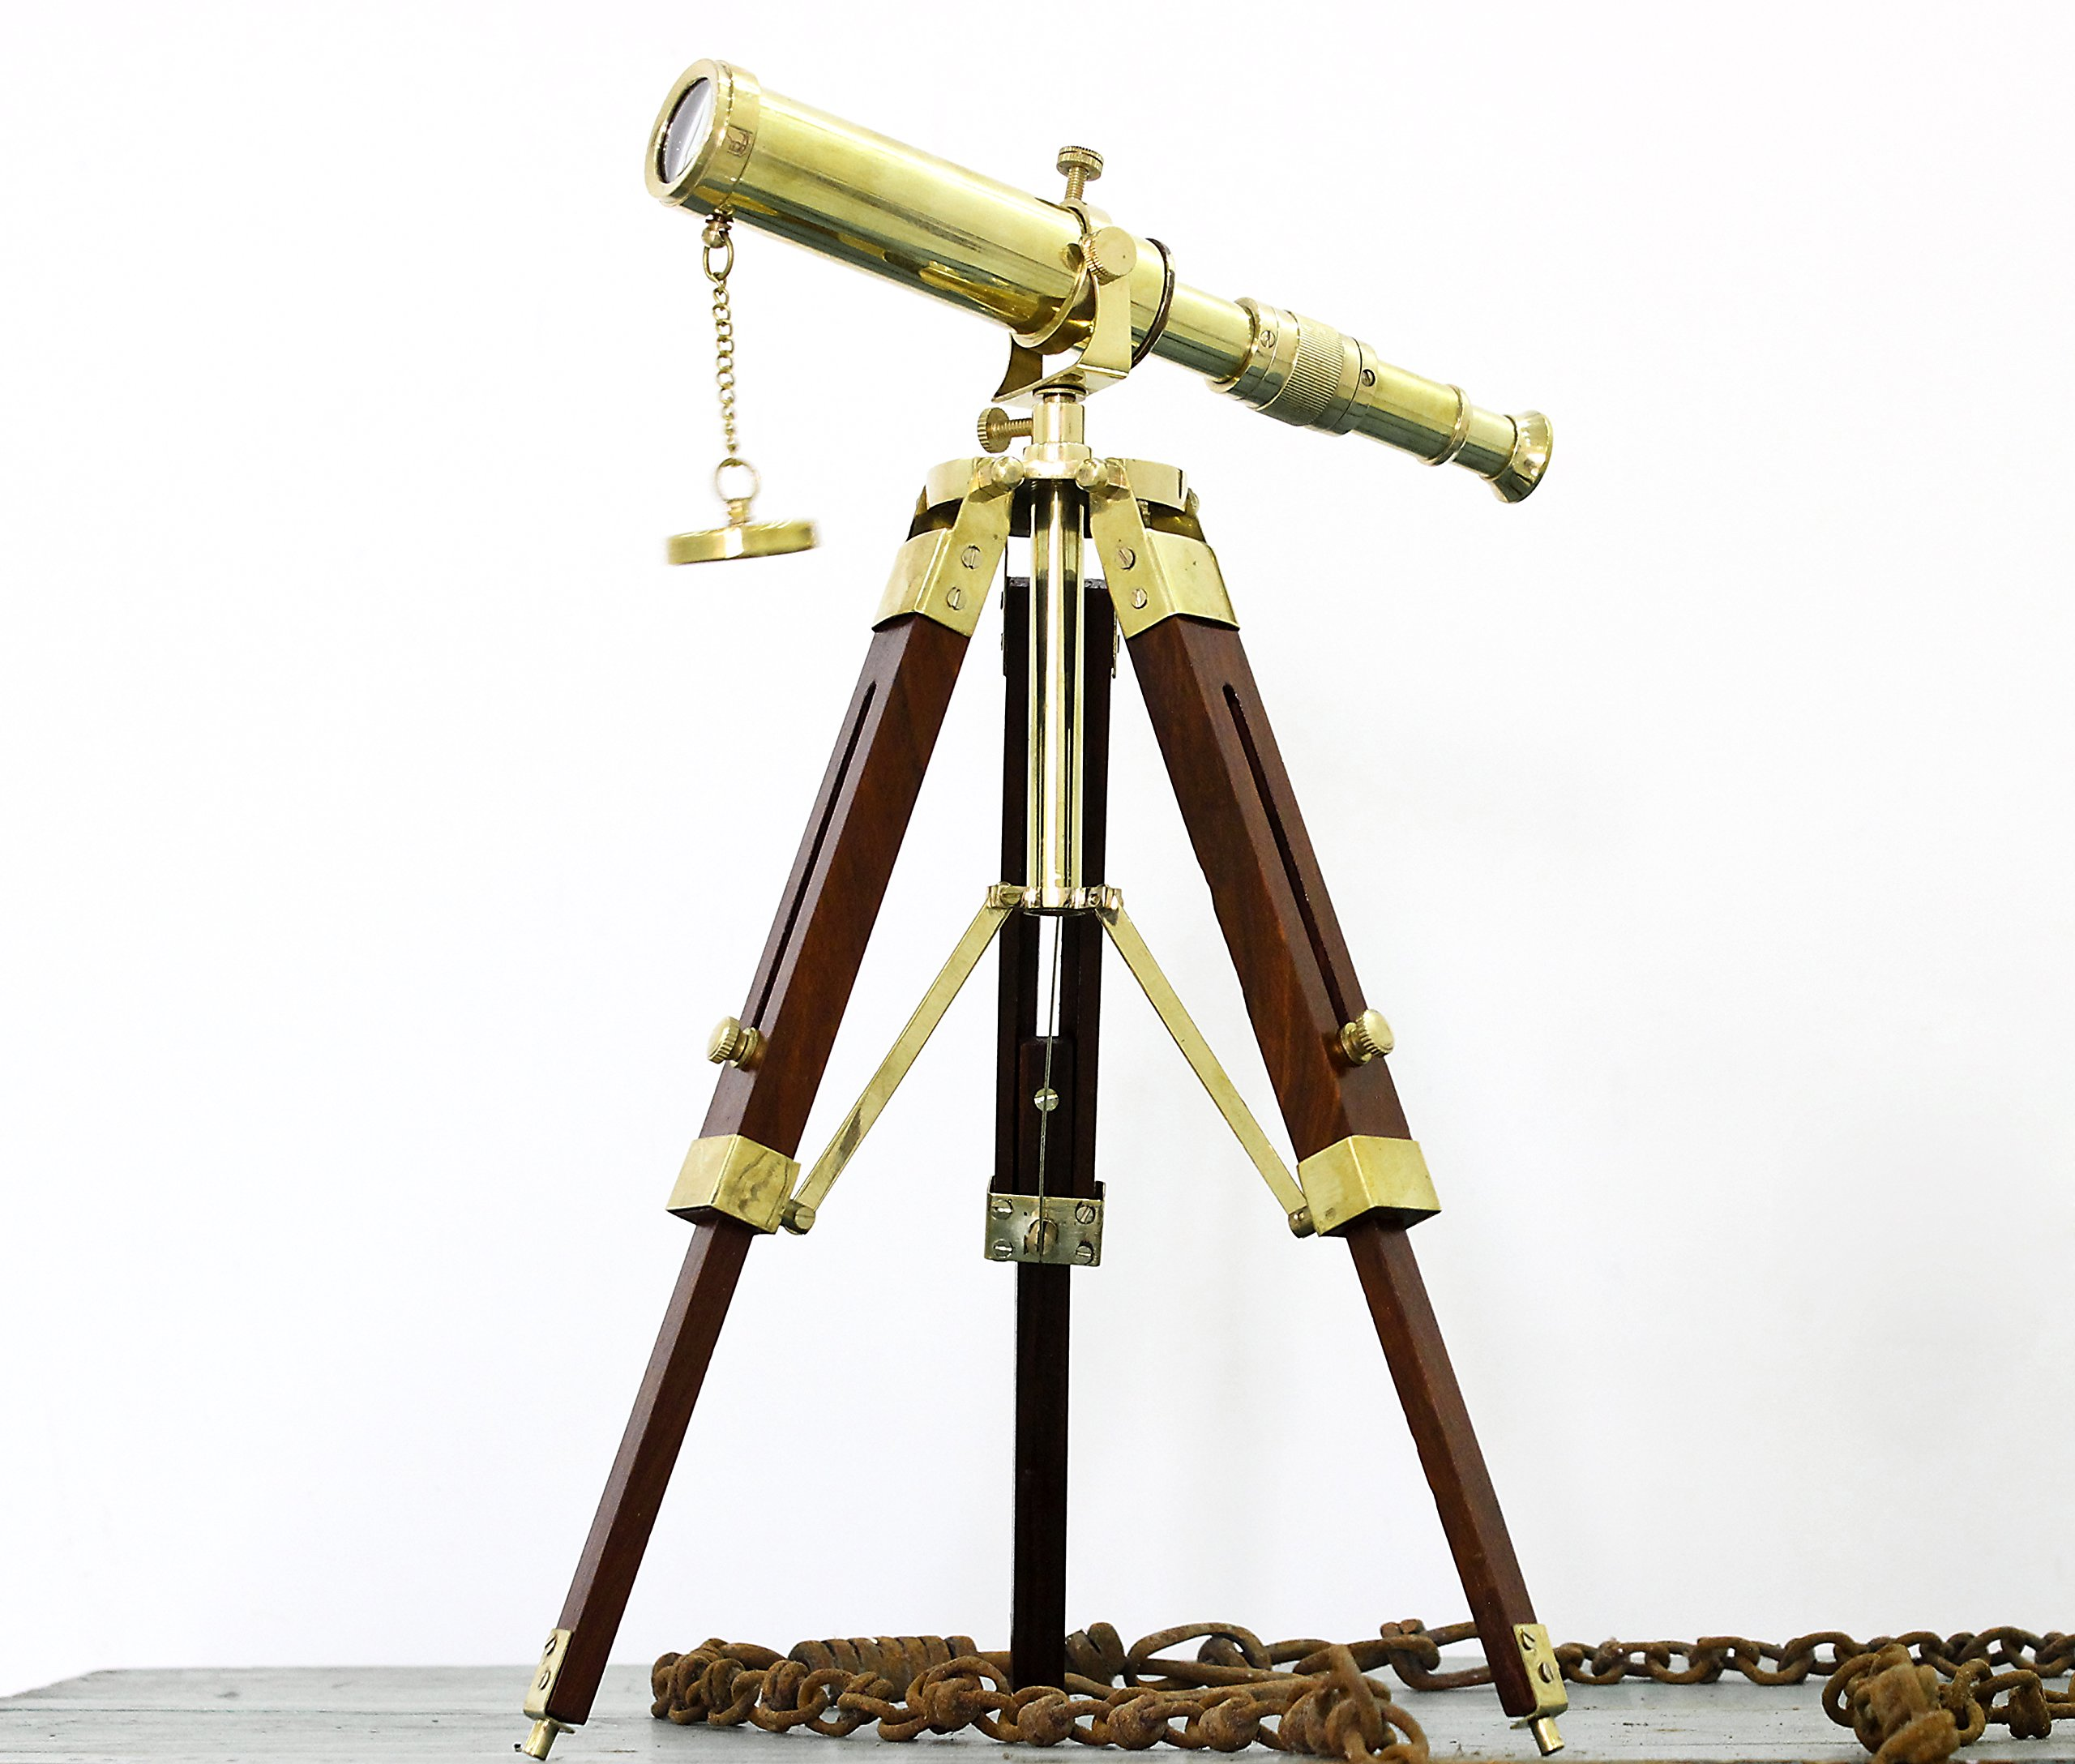 Maritime Brass Table Telescope Nautical Desktop Tripod Shiny Brass Collectible Gift Love